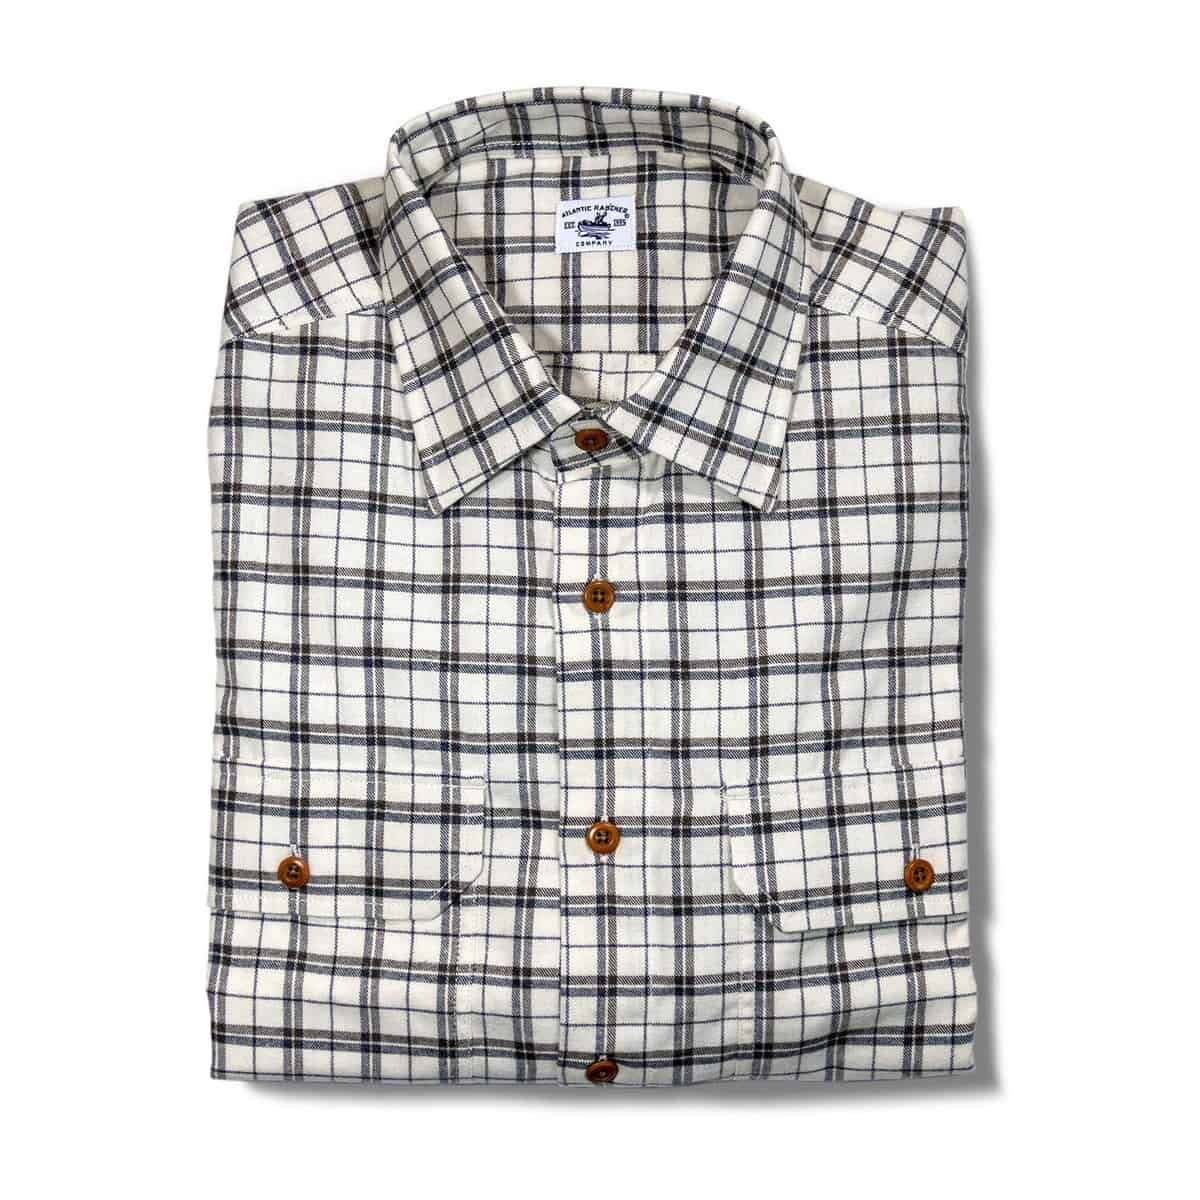 Buy The Bayman's Flannel Shirt - Cream Caramel